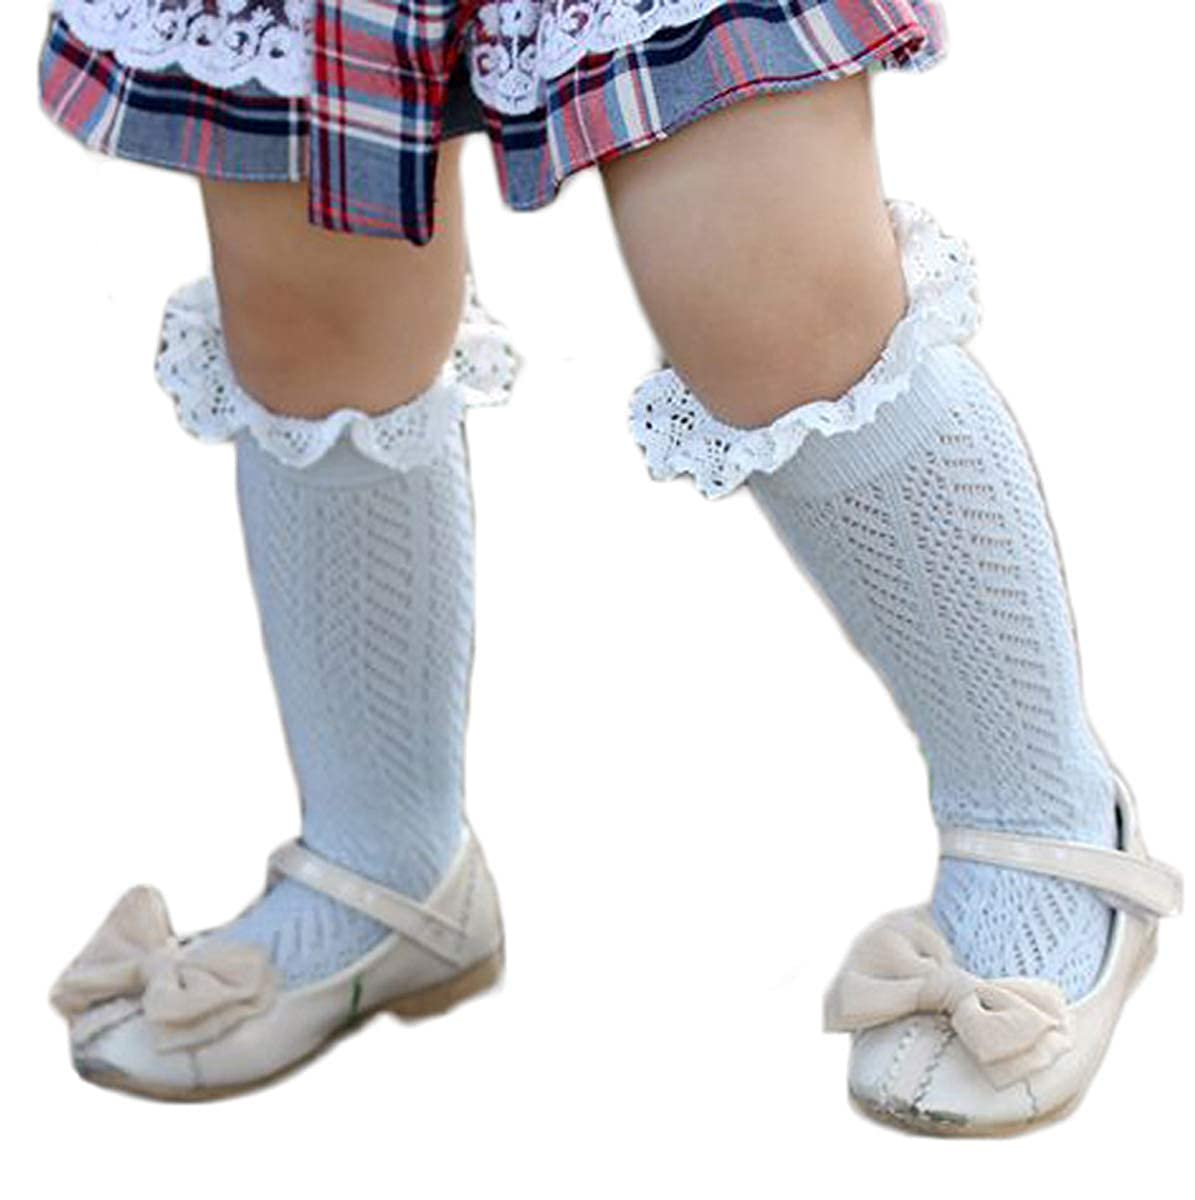 Baby Girl Boy Lace Trim High Knee Cotton Long Tube Socks Stockings,One Size For 3-10T